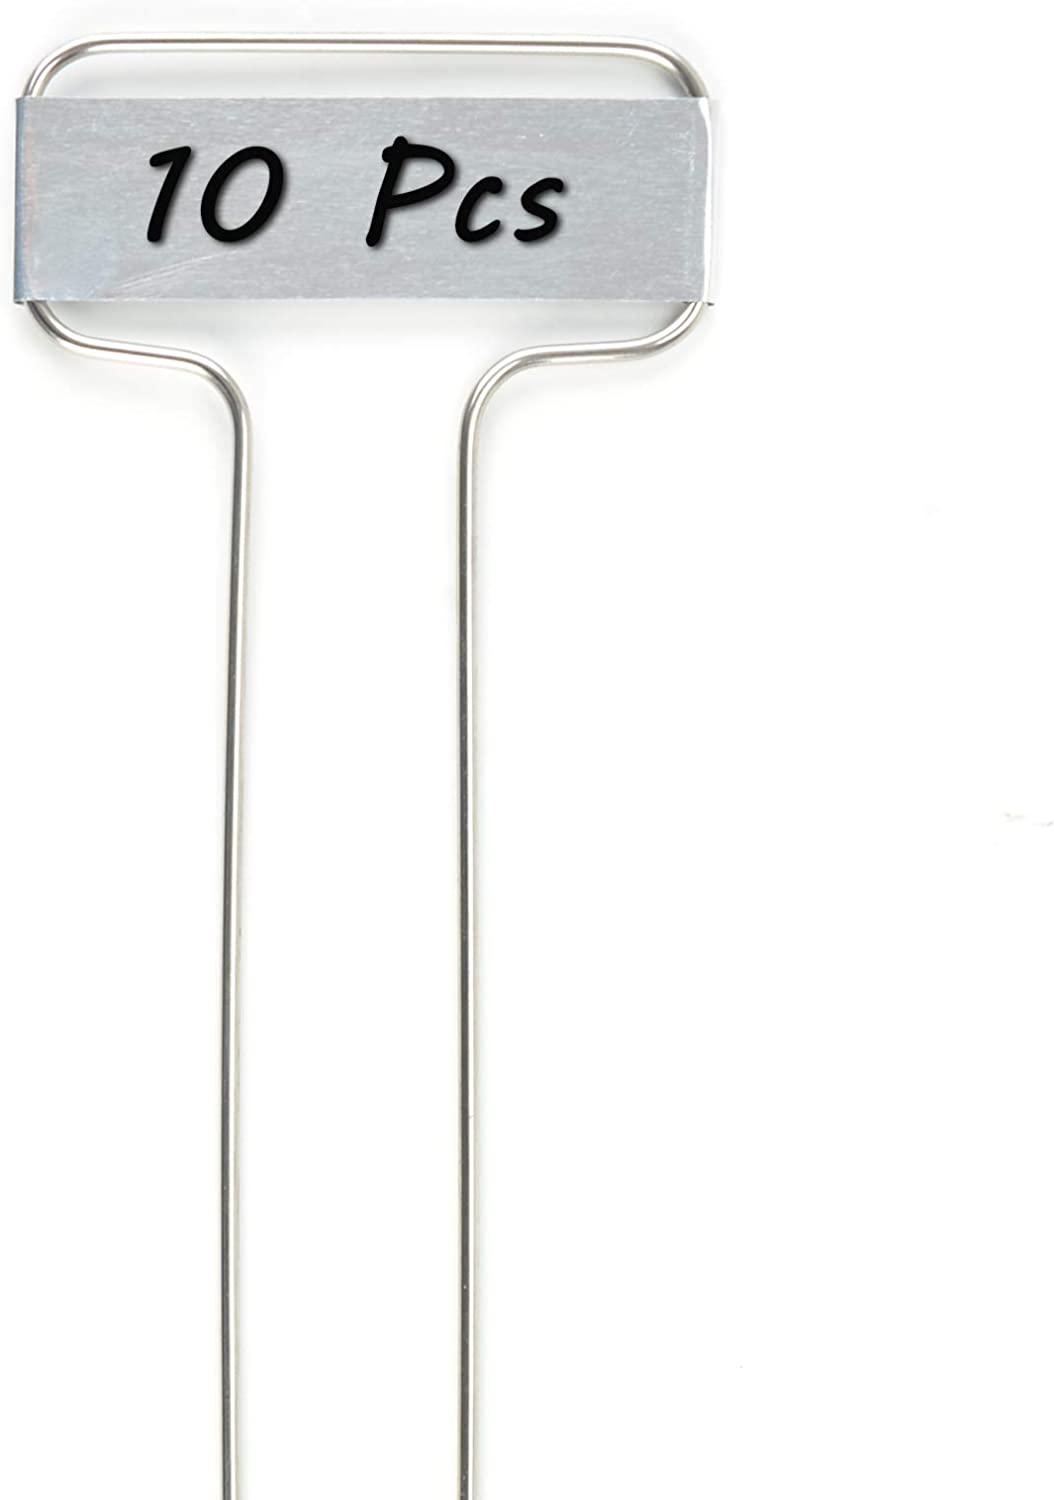 "Metal Plant Labels - 10 Pcs Small-Faced Aluminum Plant Markers Waterproof Reusable Garden Stake Tags,Height 10"",Label Area 2.5'' x 7/8''"